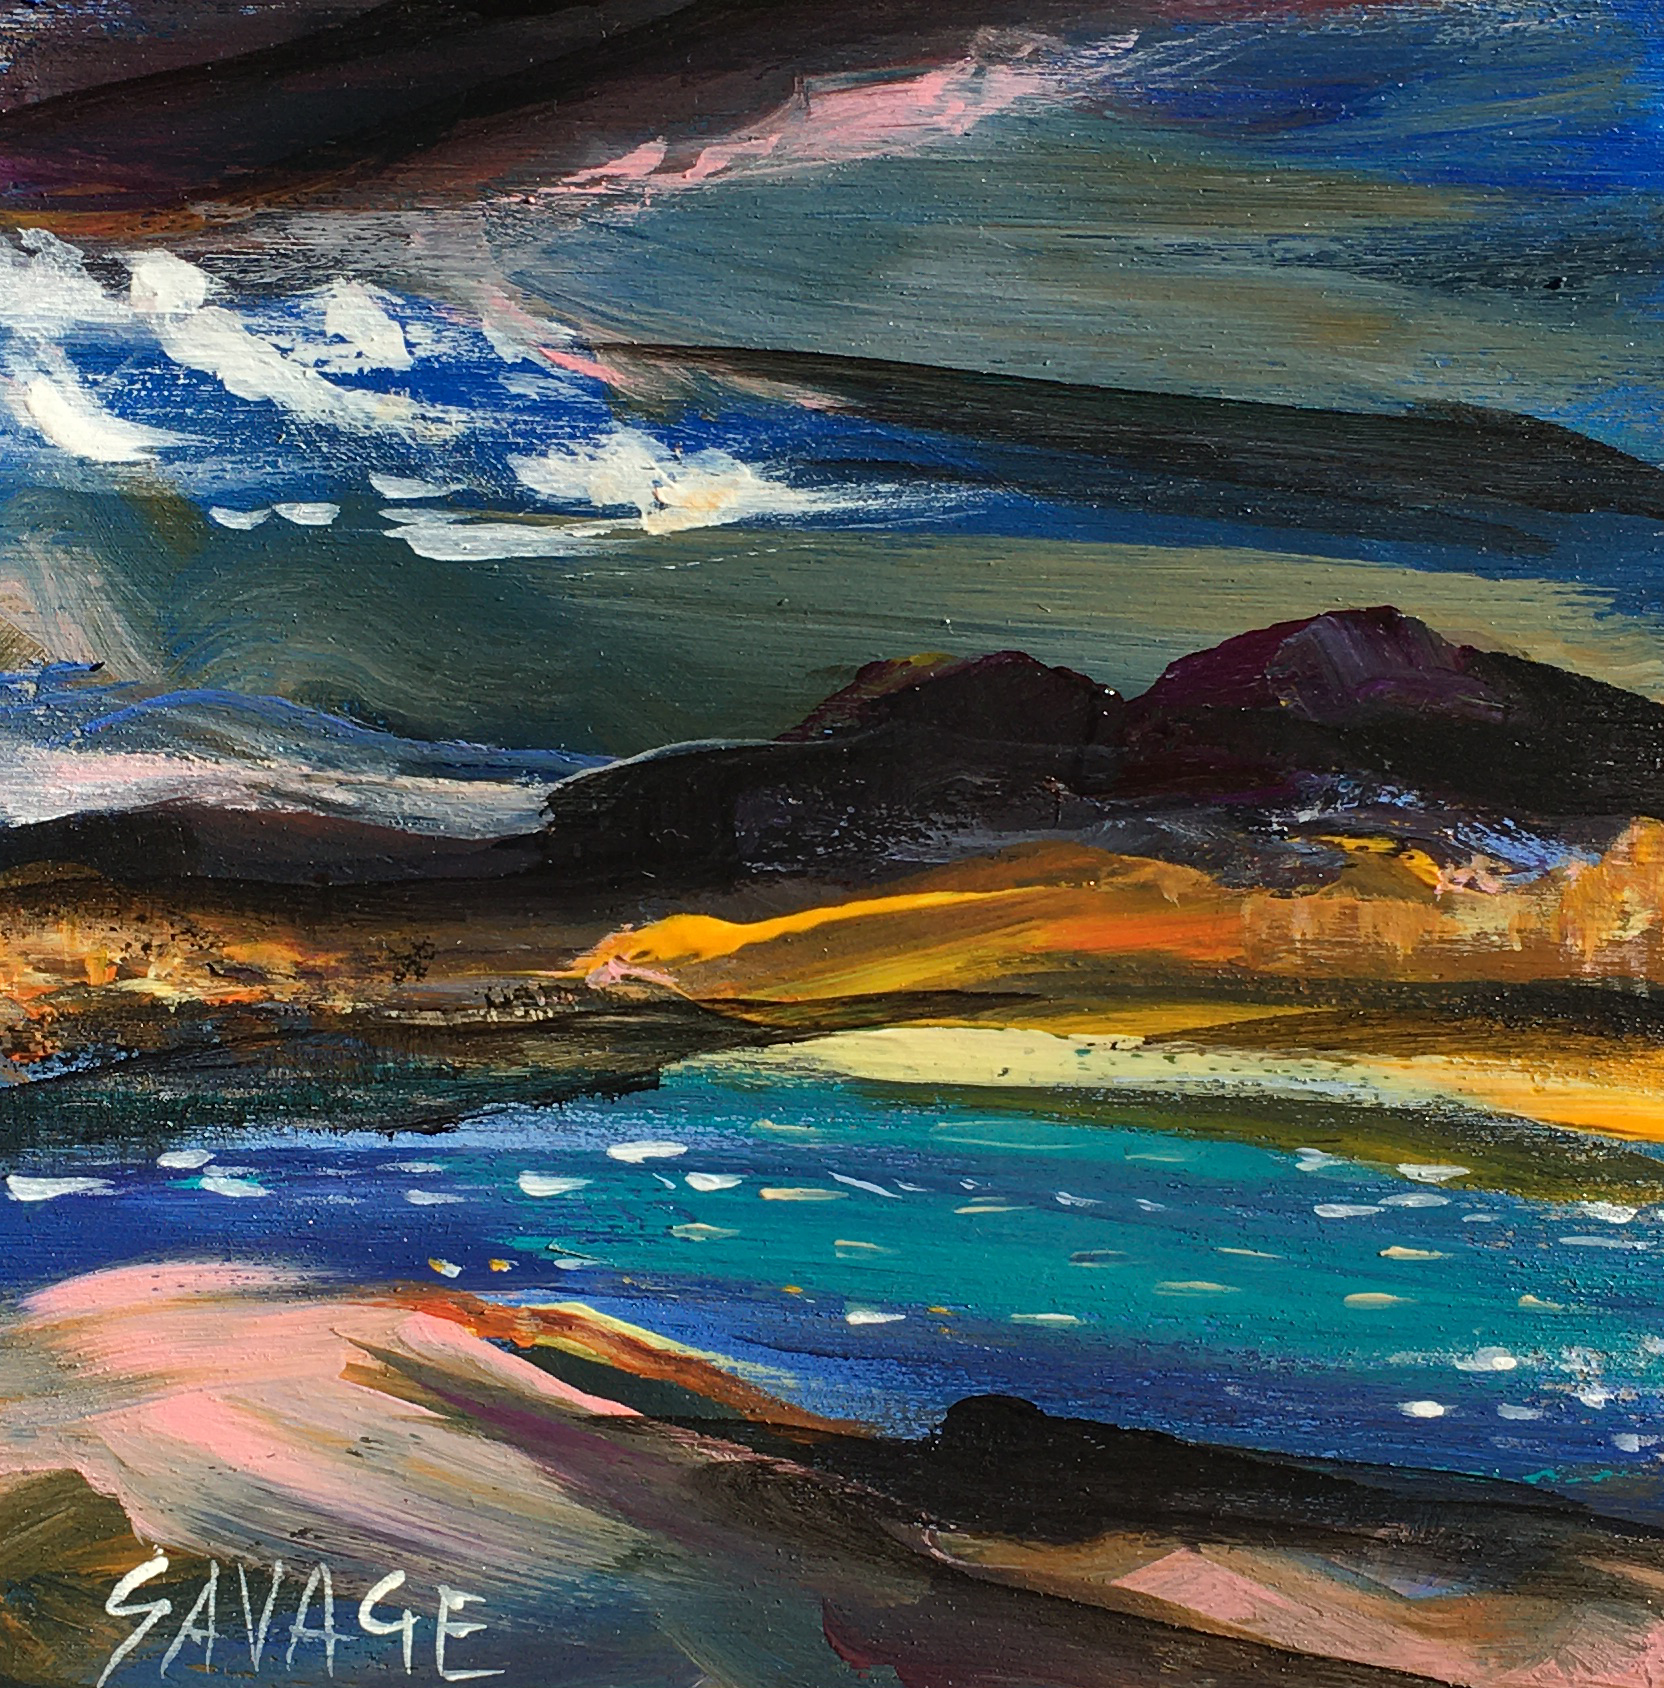 Savage - Wind on the lake - 5x5 - 50$